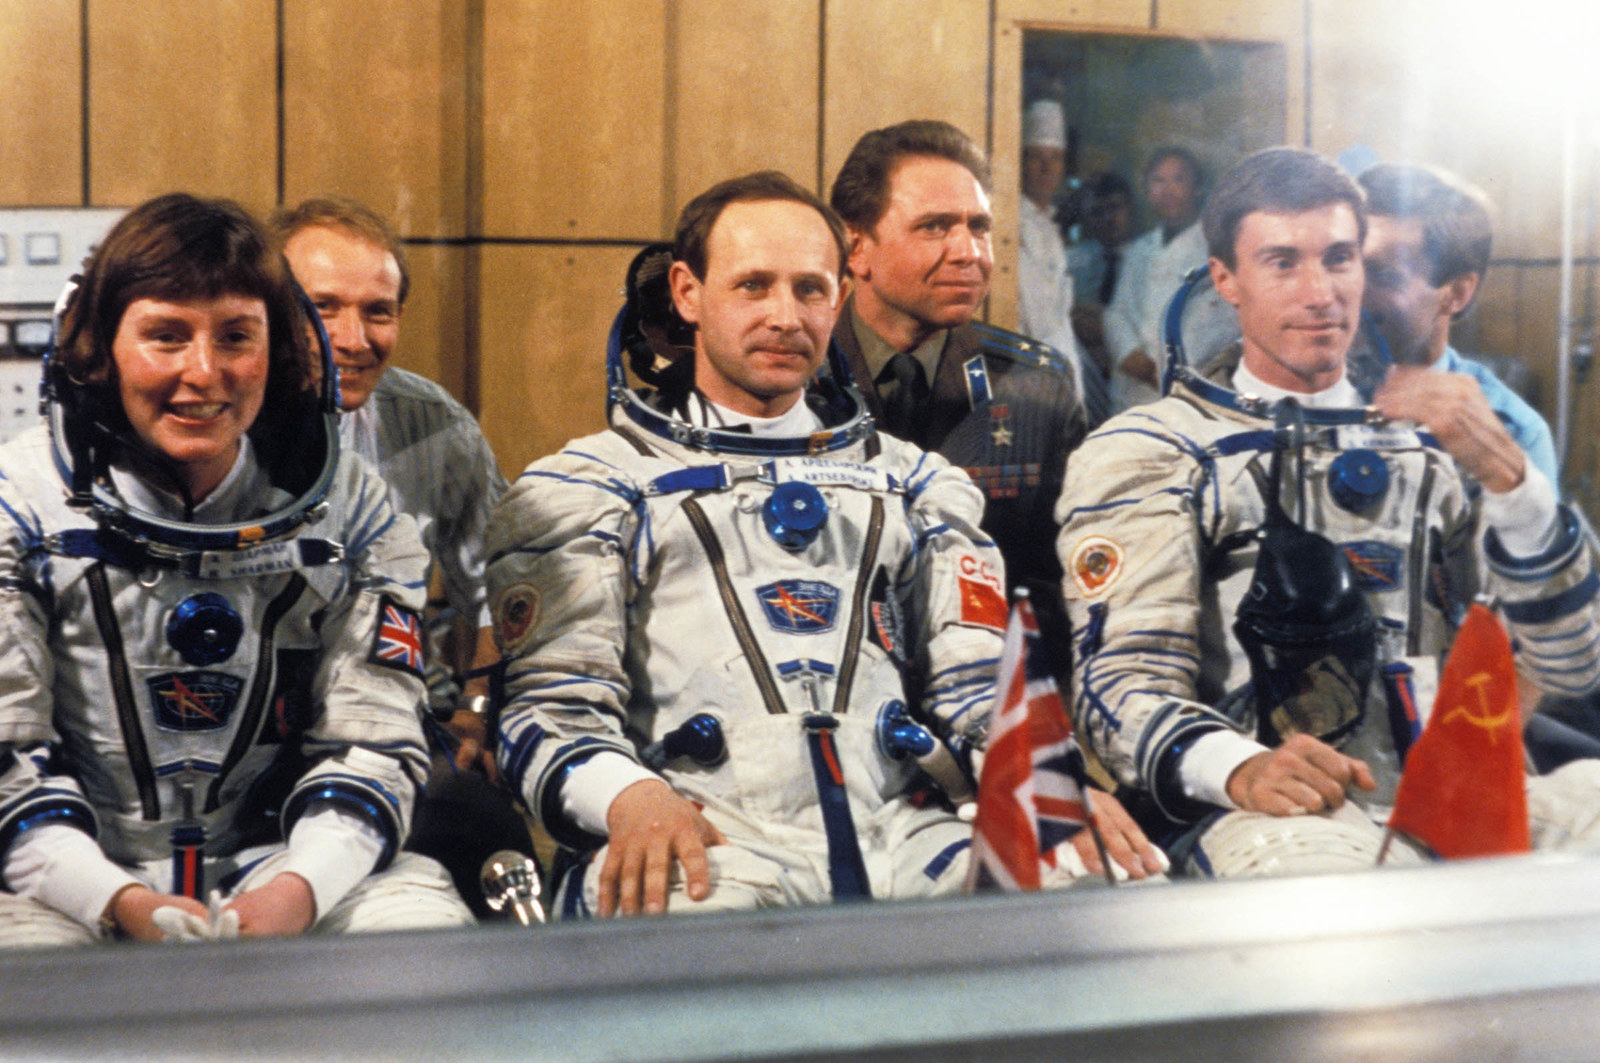 1991 Soyuz TM-12 cosmonauts Helen Sharman, Anatoly Artsebarsky, and Sergei Krikalev prior to launch. Sharman was the first British person to go to space.